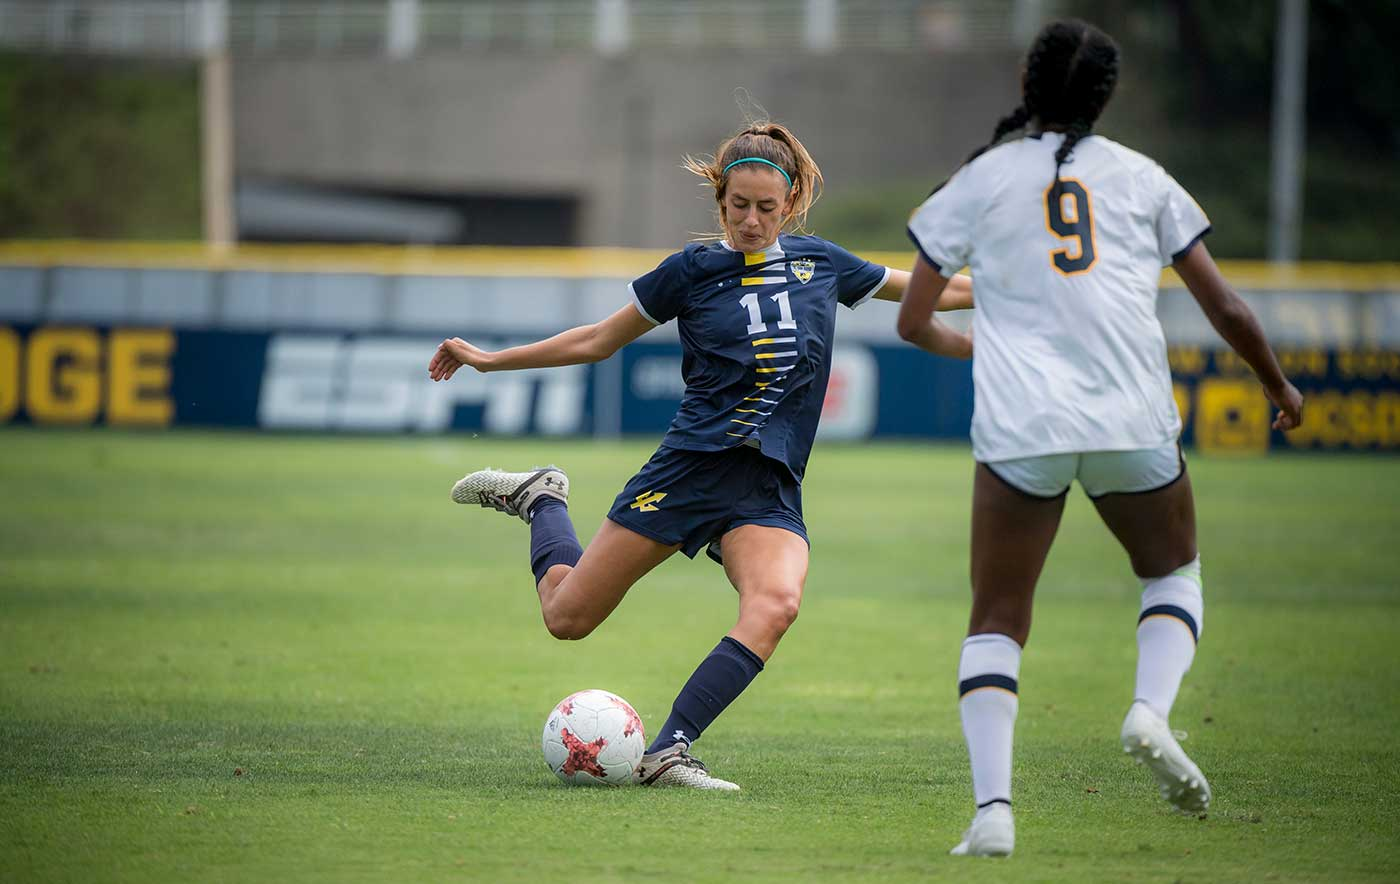 Natalie Widmer at the UC San Diego Women's Soccer versus Cal game.